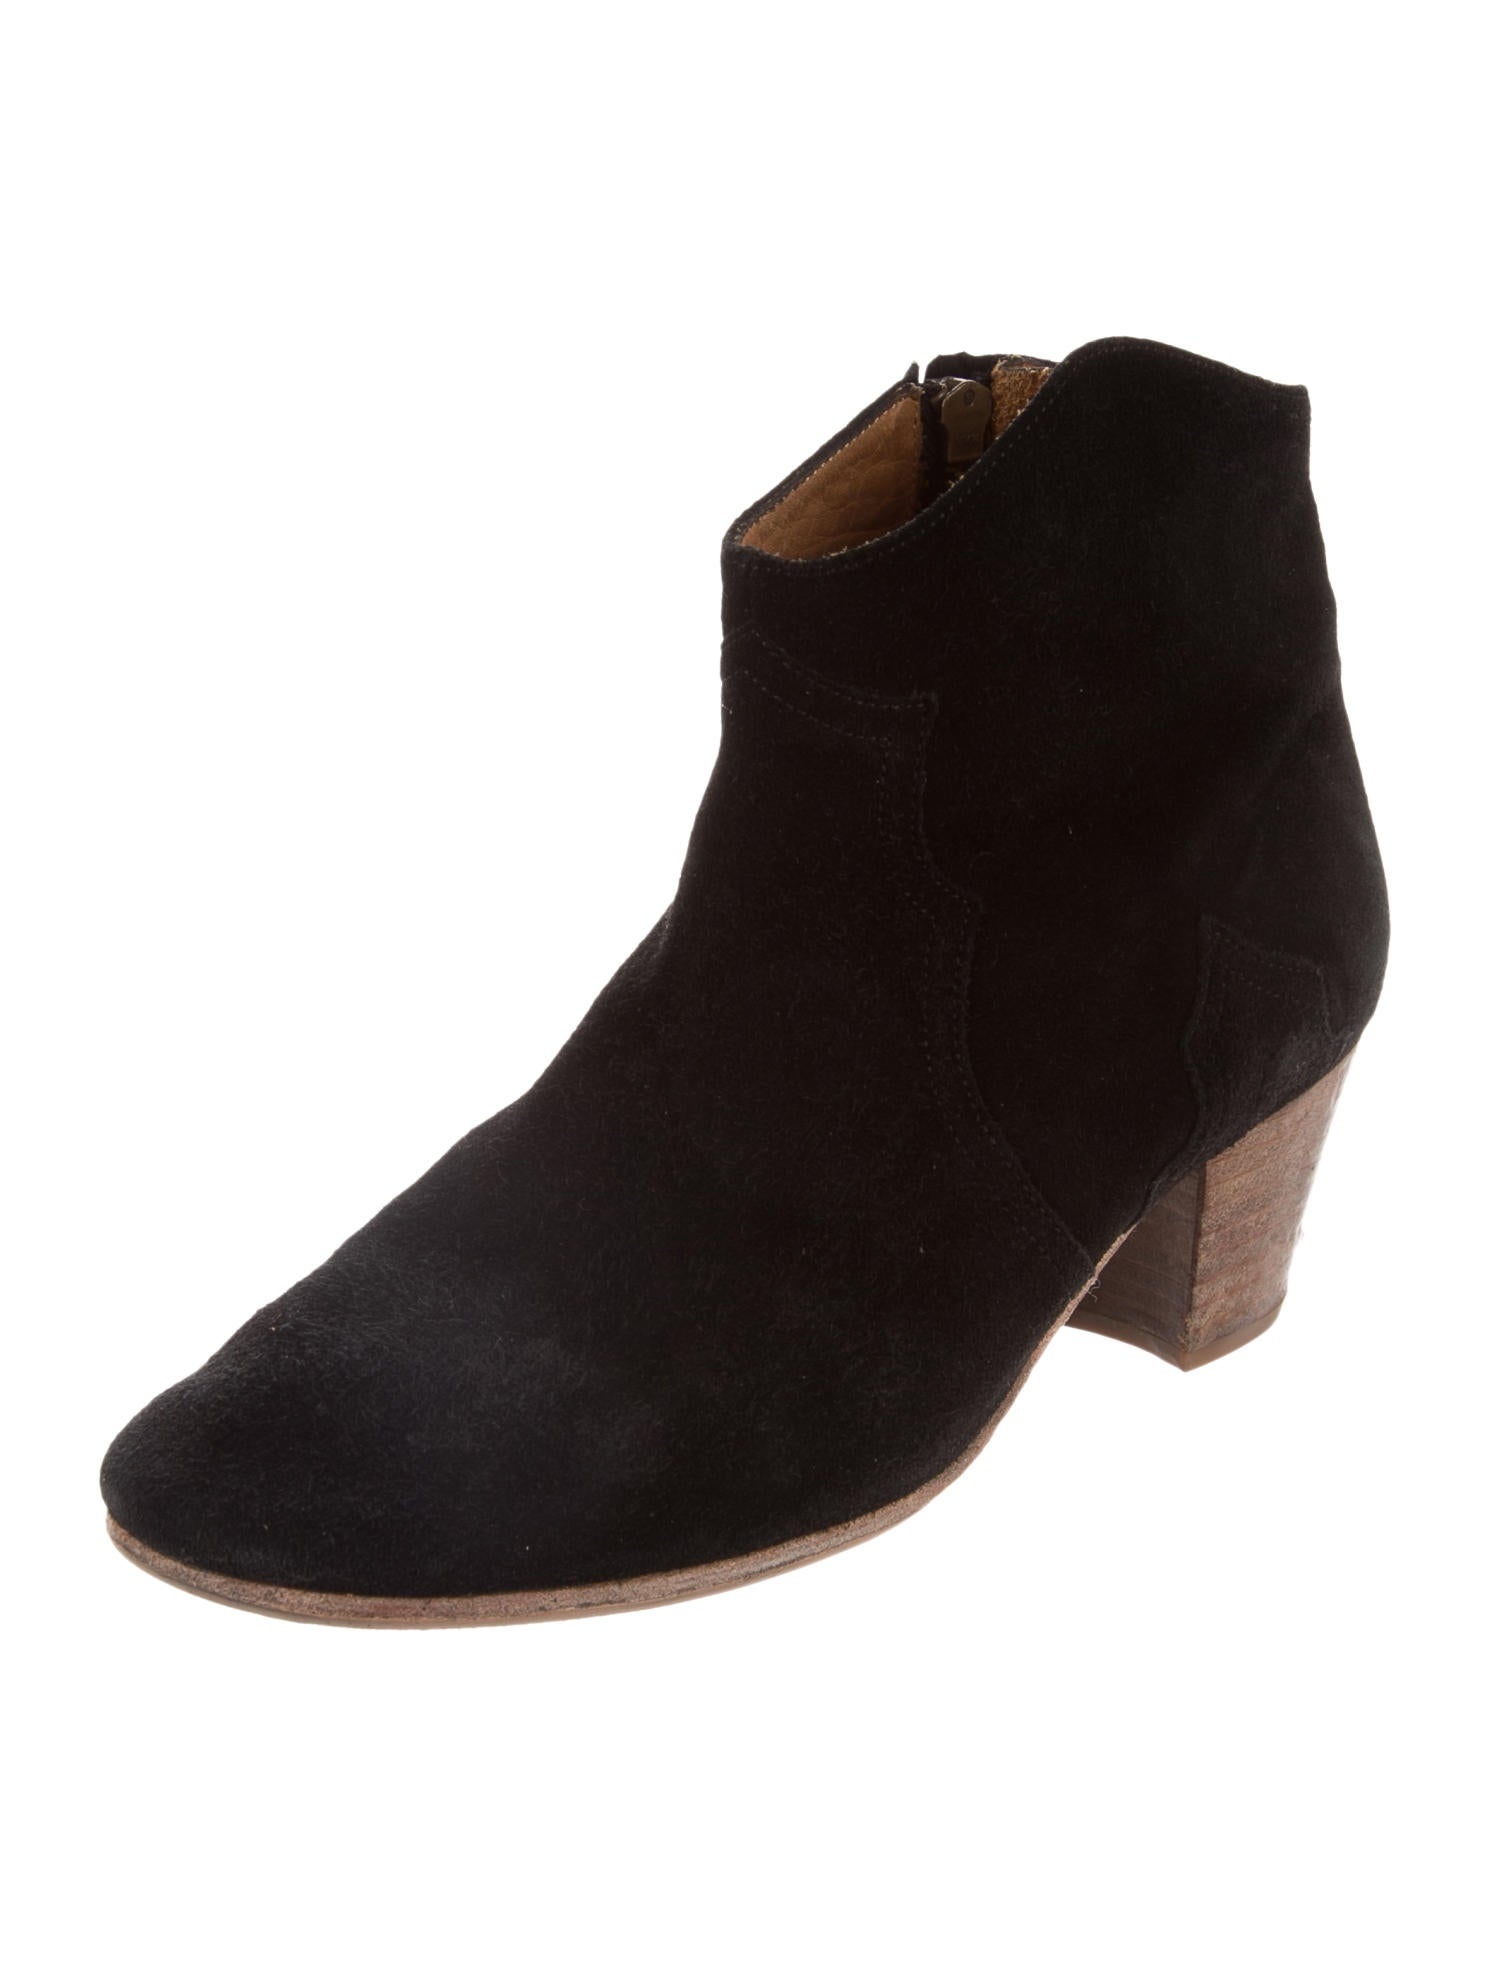 201 toile marant dicker suede ankle boots shoes